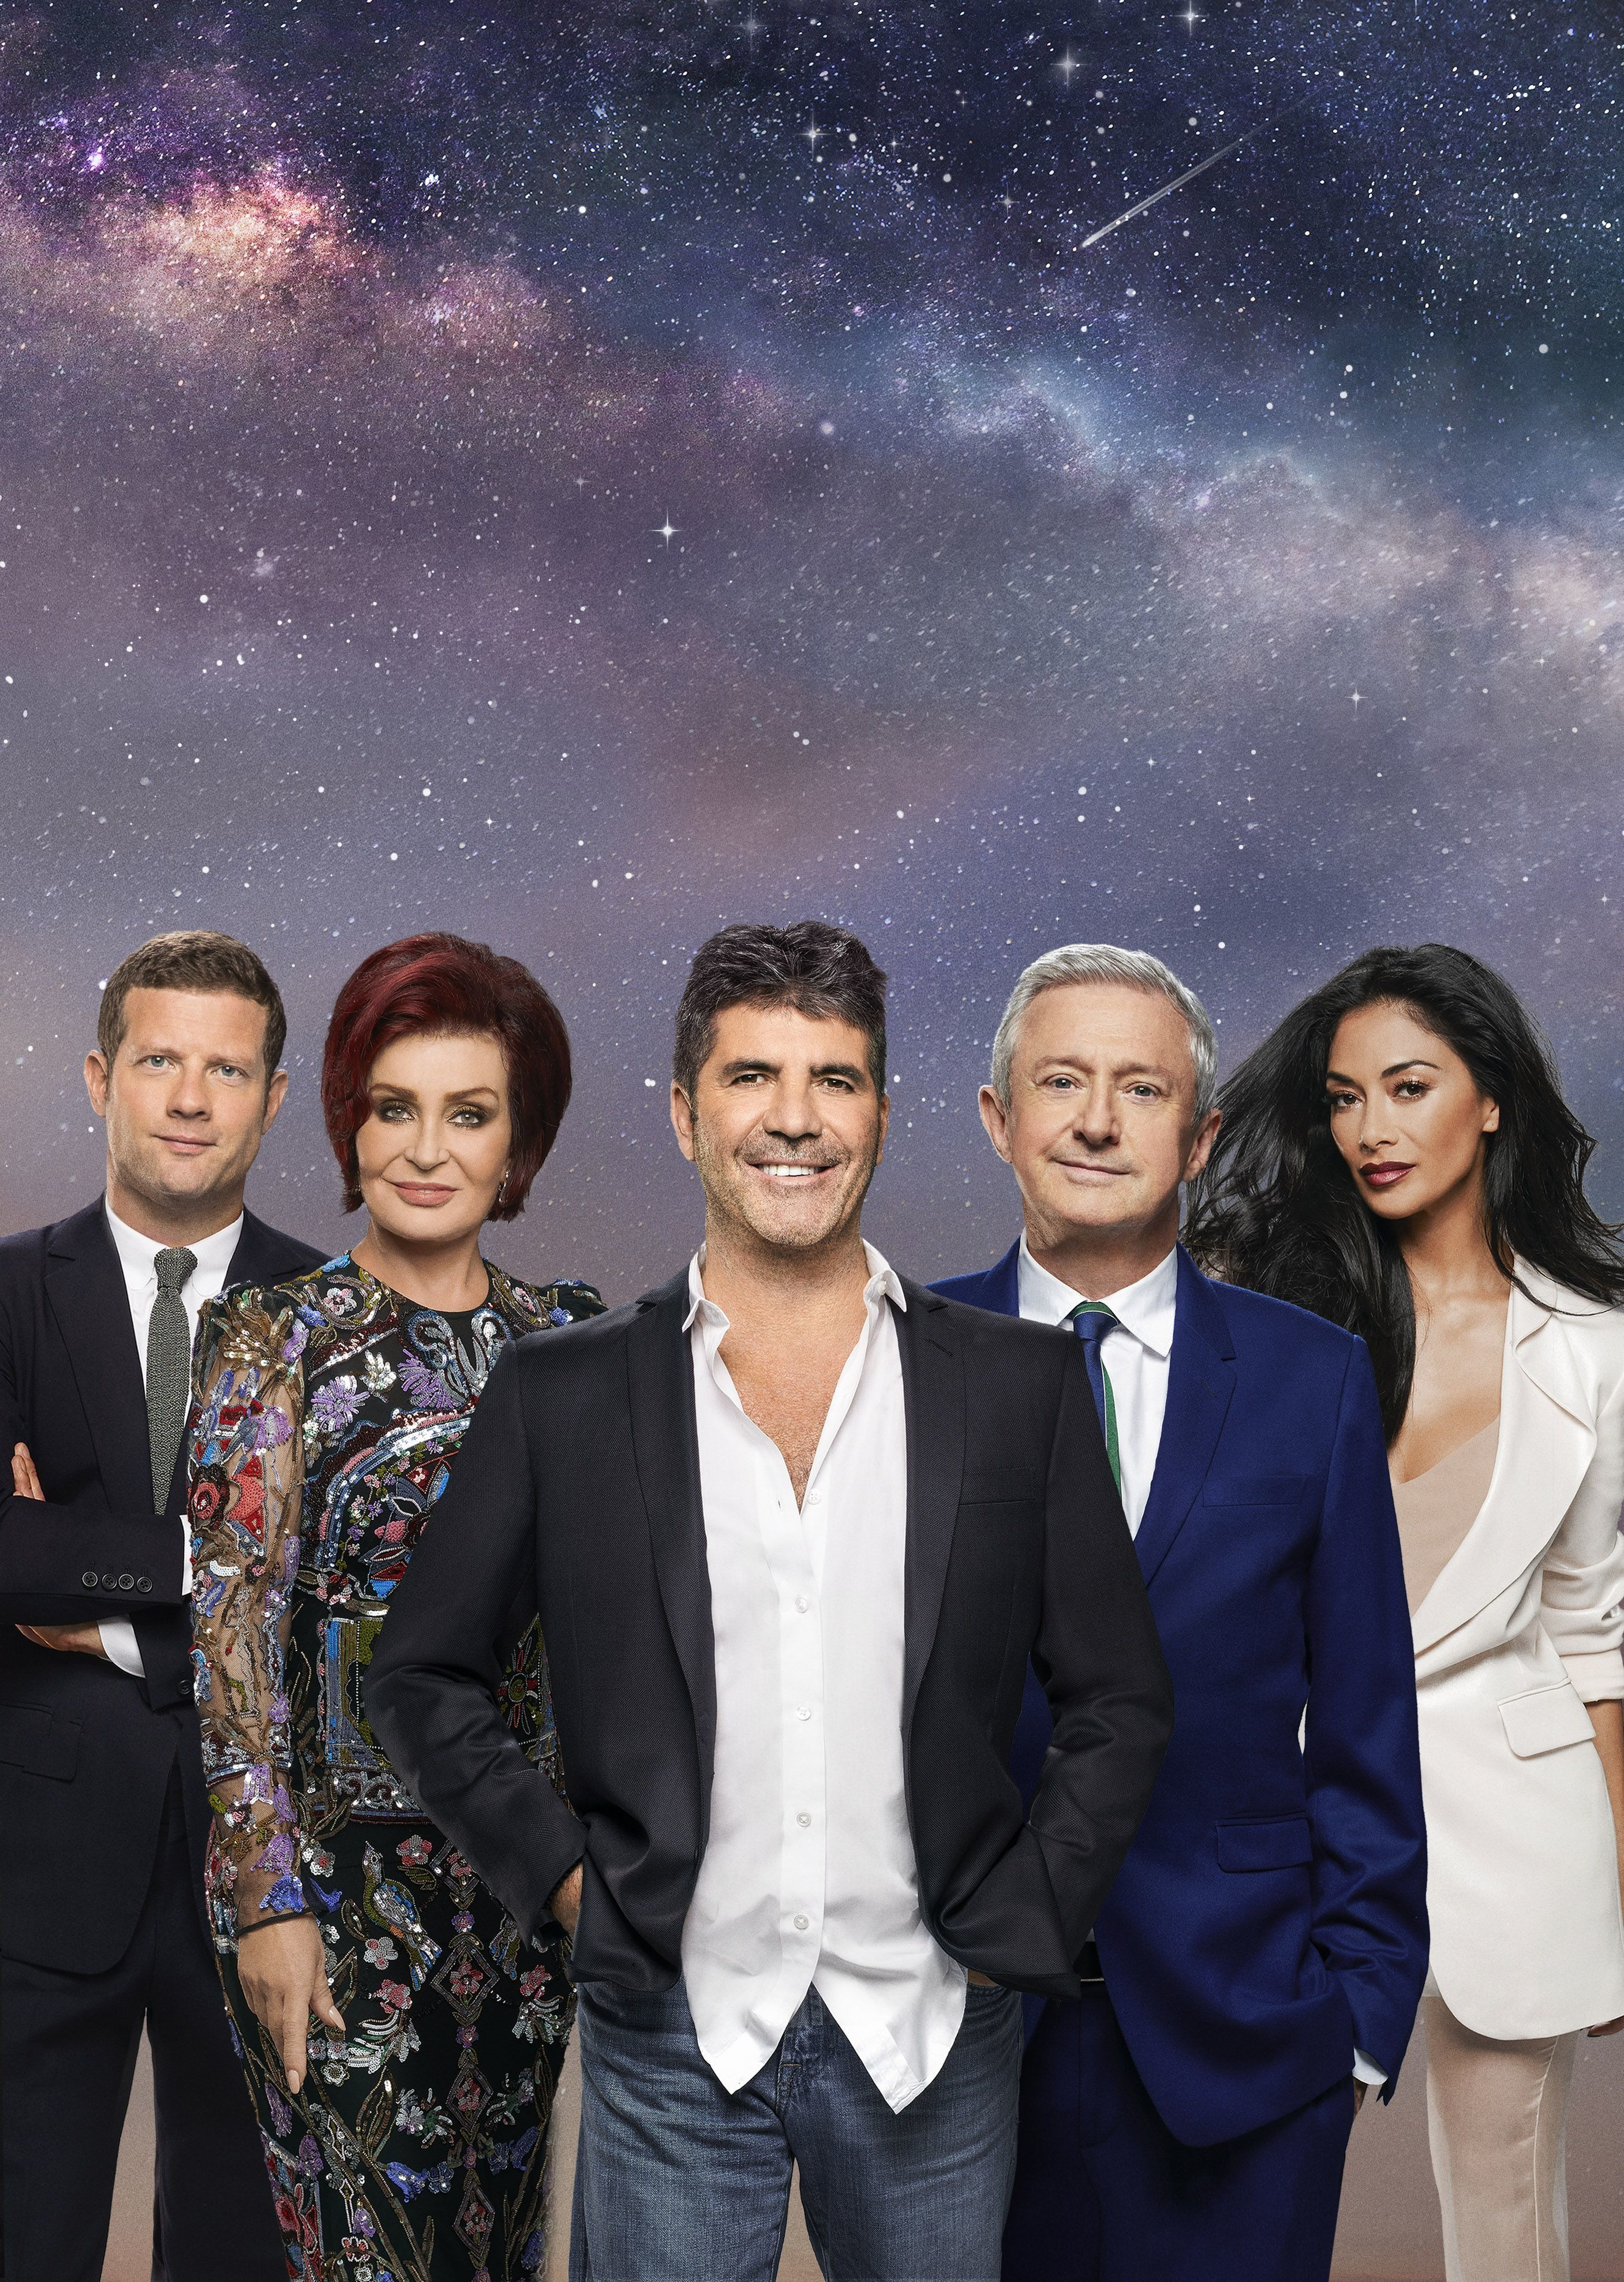 Simon Cowell Insists Sharon Osbourne Will Not Lose 'X Factor' Role After Insulting Him And